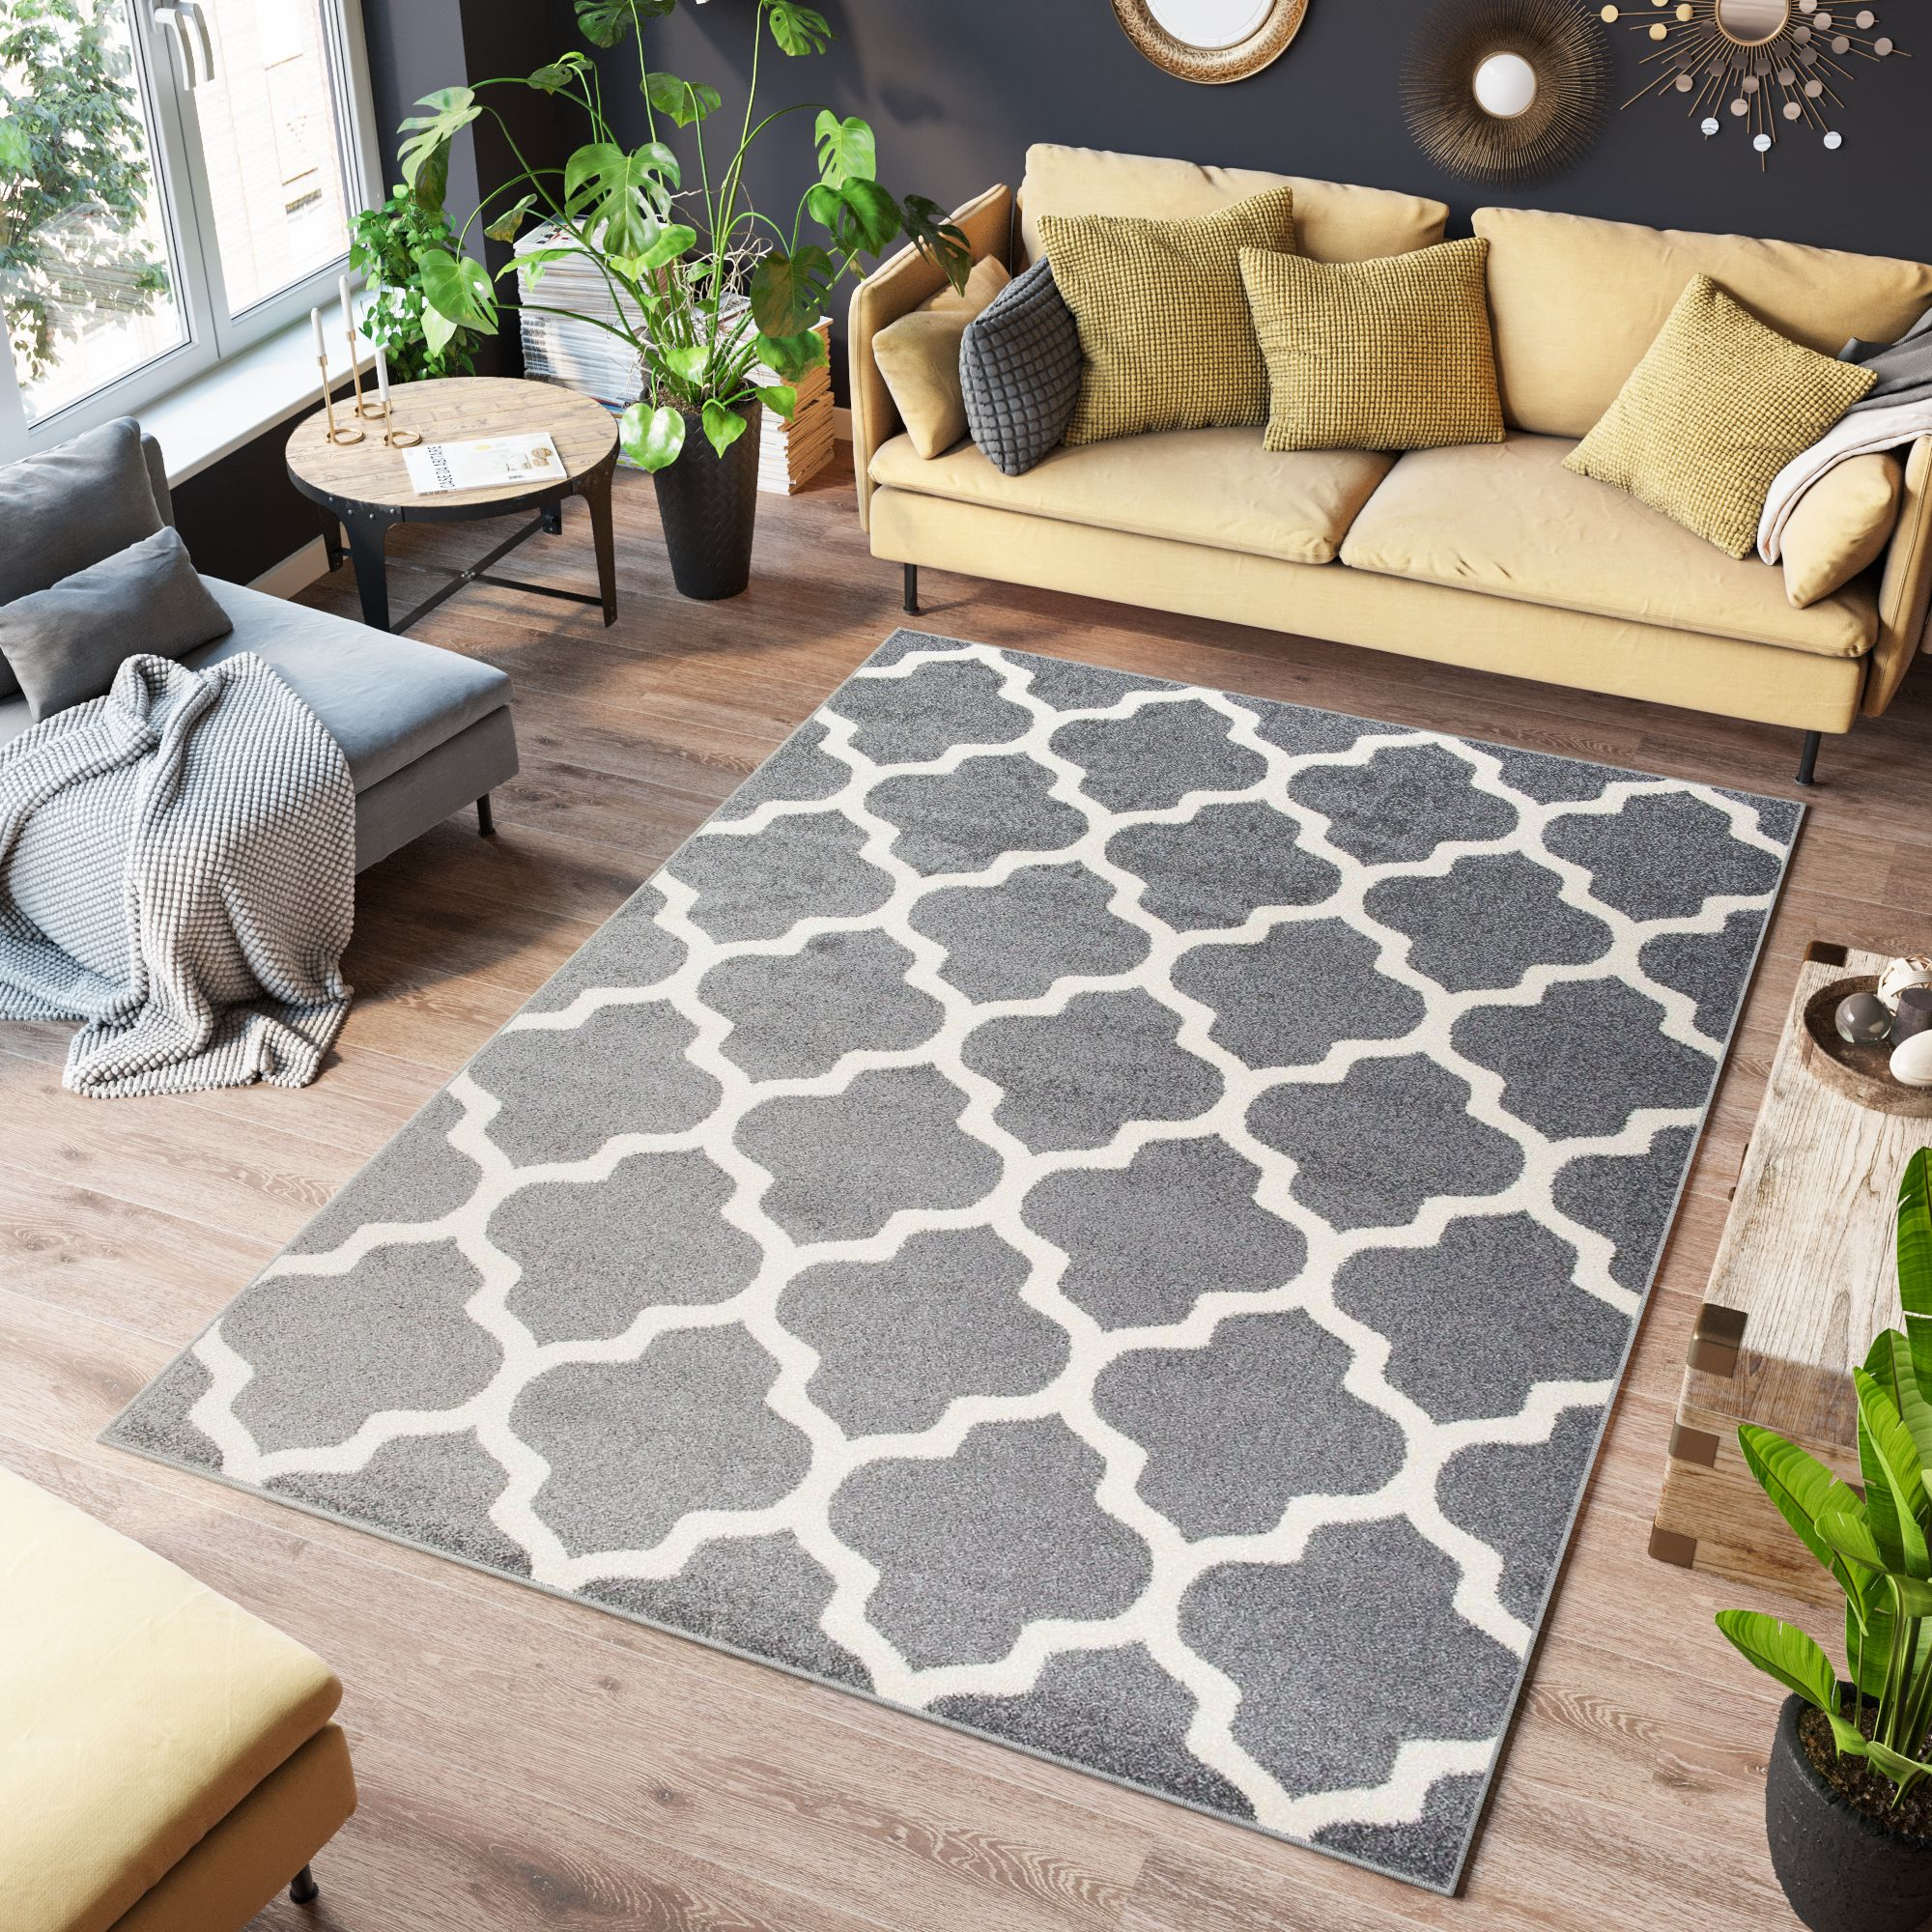 Achieve individual interior ambience by combining